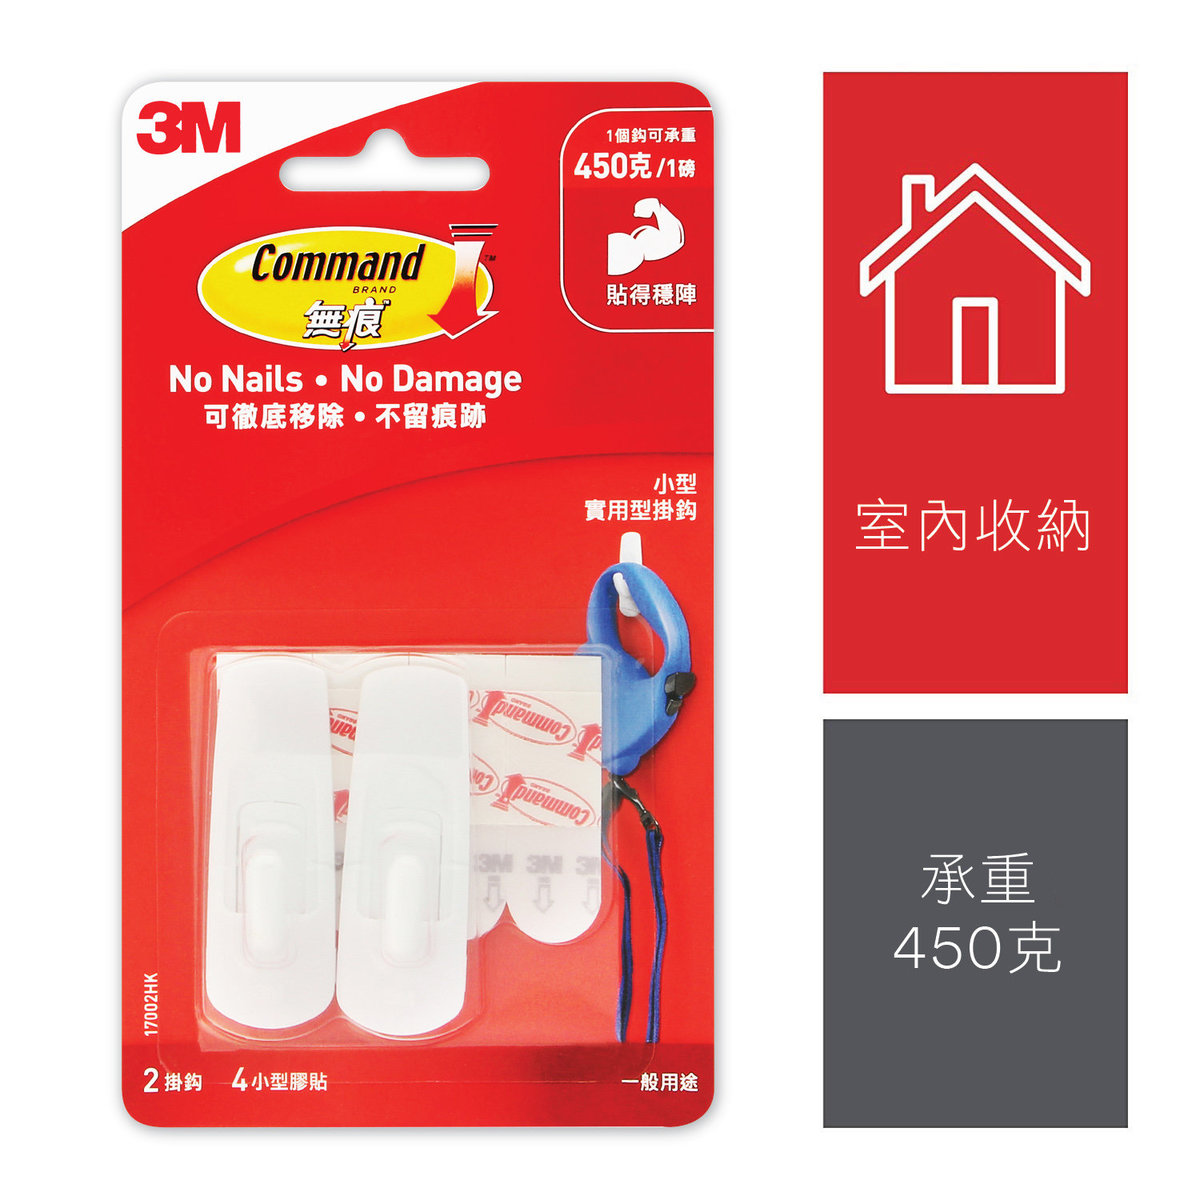 Small Utility Hooks, Holds 450g, No Tools or Holes, 2 hooks, 4 small adhesive strips